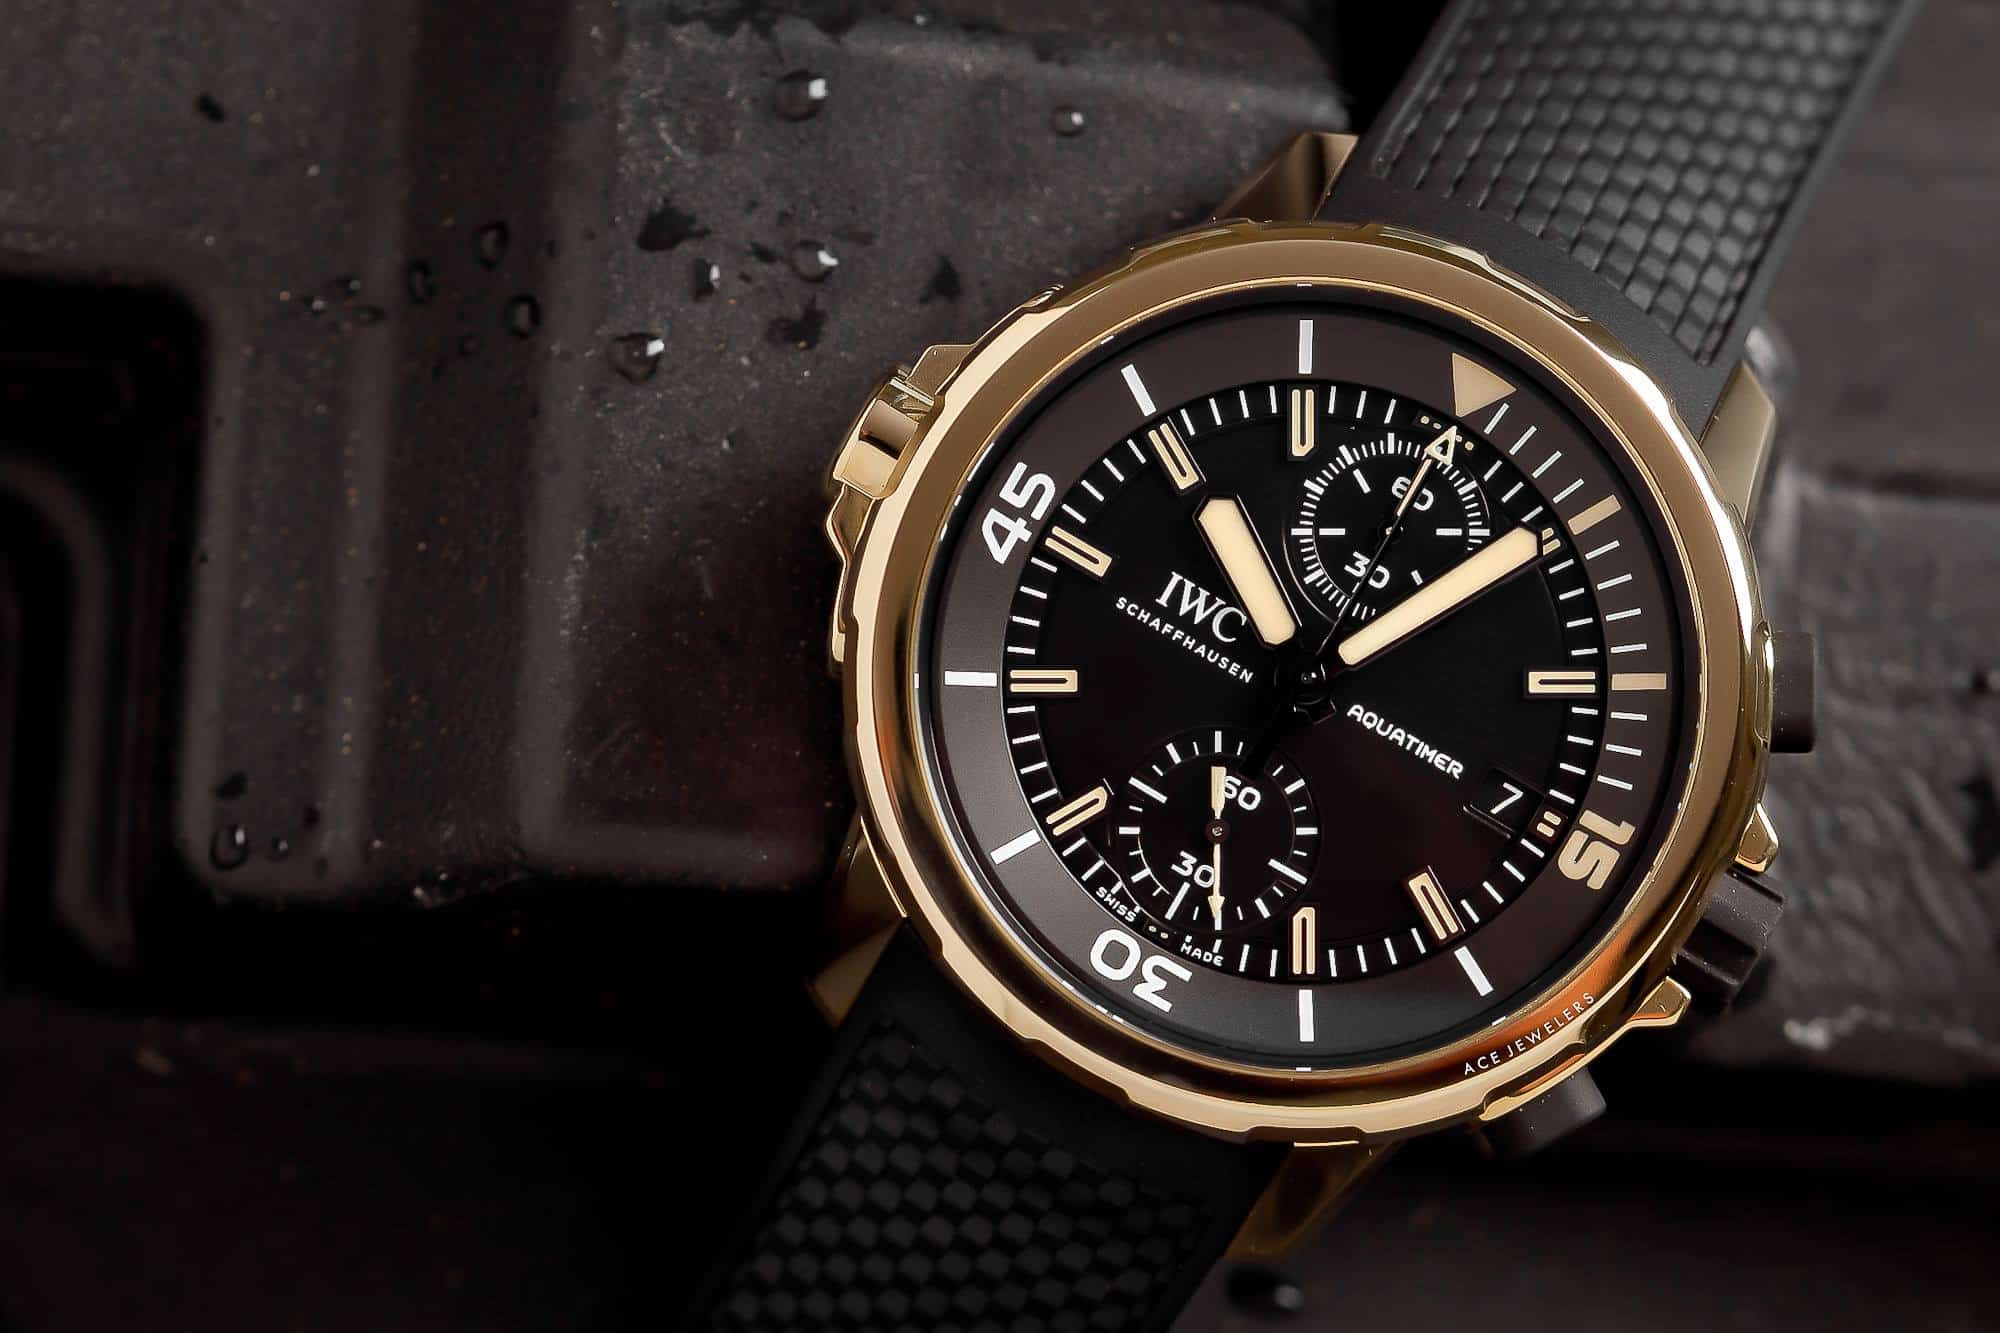 IWC Schaffhausen Aquatimer Expedition Charles Darwin – bronze watch